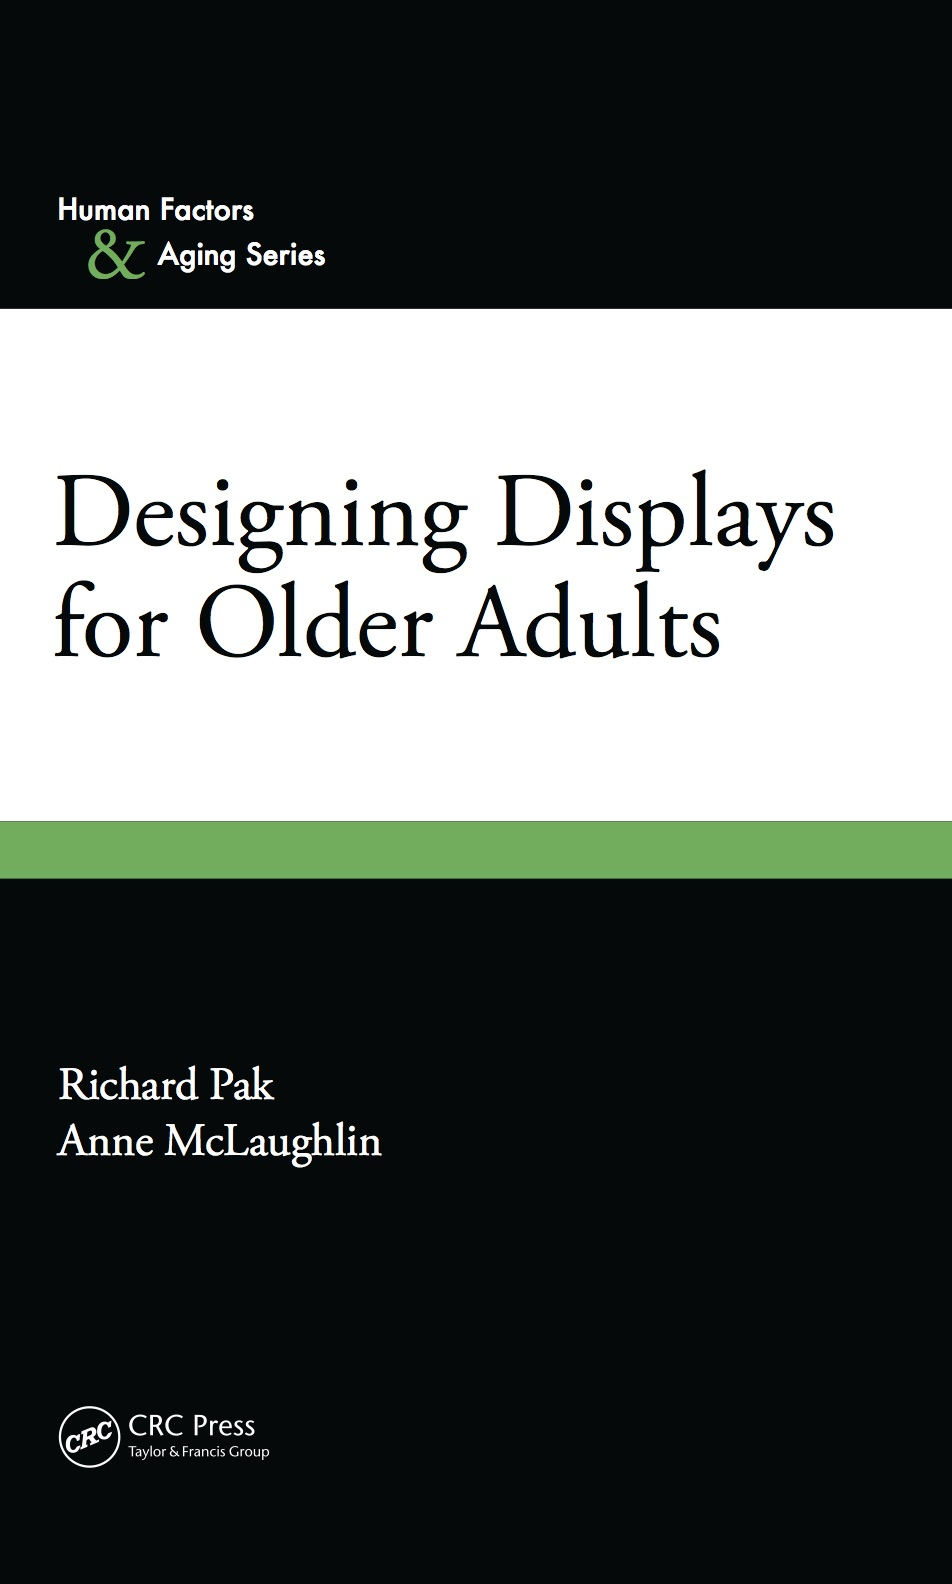 Designing Displays for Older Adults (2010)